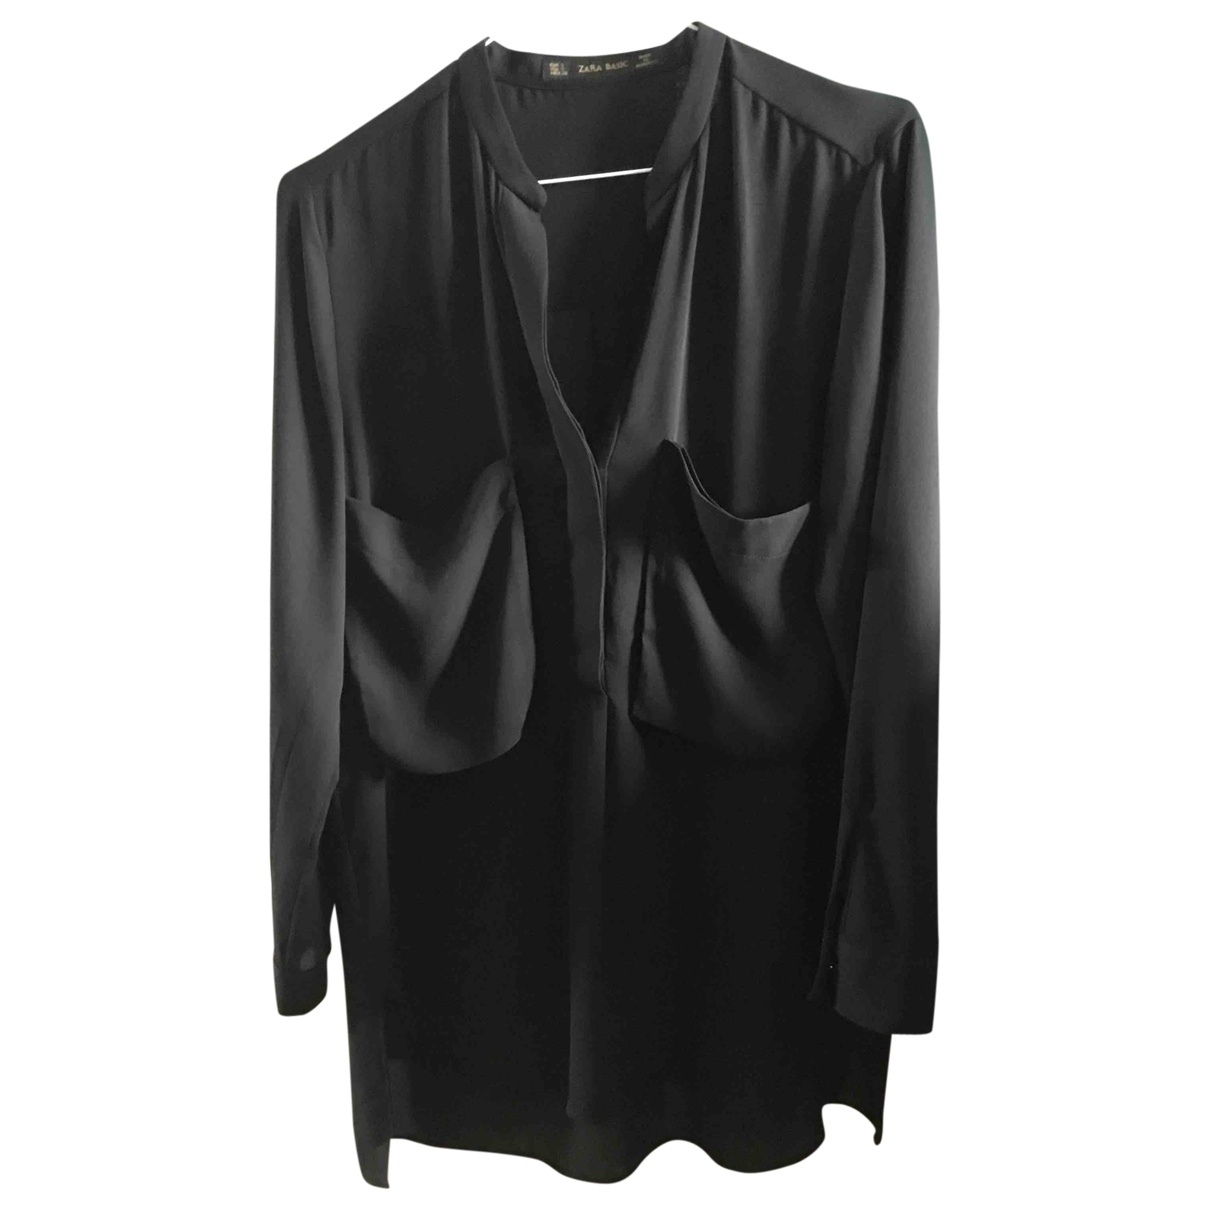 Zara \N Black  top for Women S International